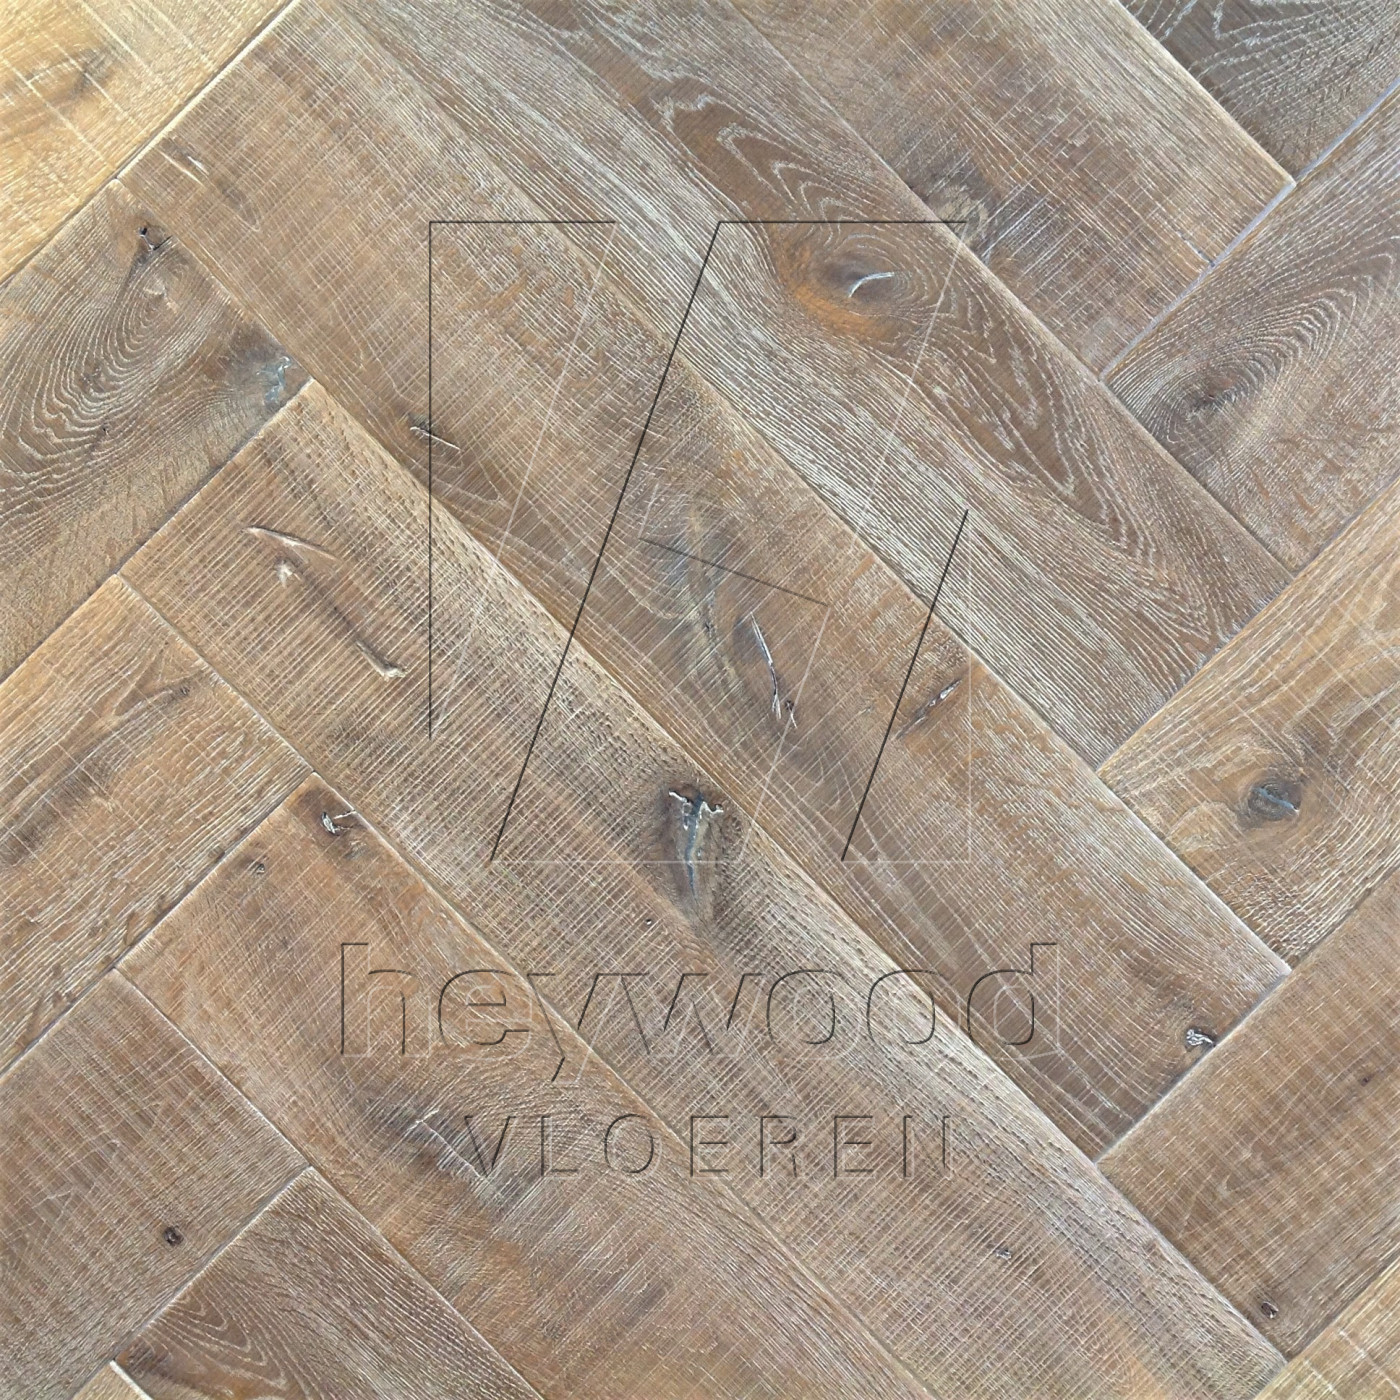 Knotting Hill Herringbone 'Gotland' in Herringbone of Pattern & Panel Floors